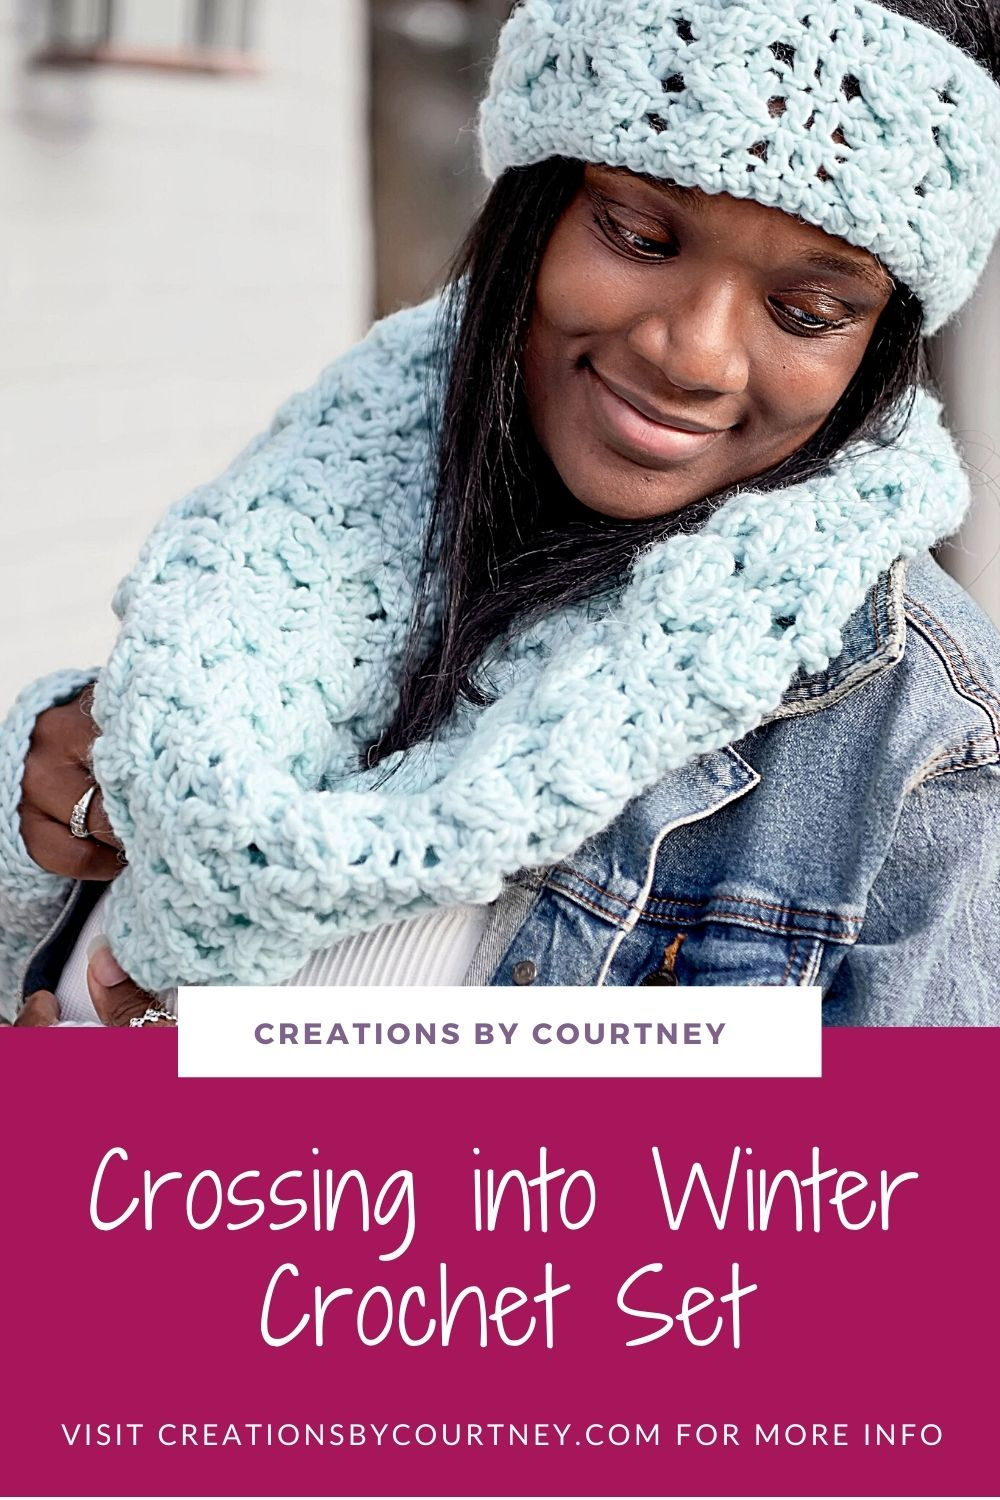 The Crossing into Winter Set crochet patterns offer an ear warmer, fingerless mitts, and a cowl to be made in chunky yarn. With multiple sizes, you can make a set for your entire family.